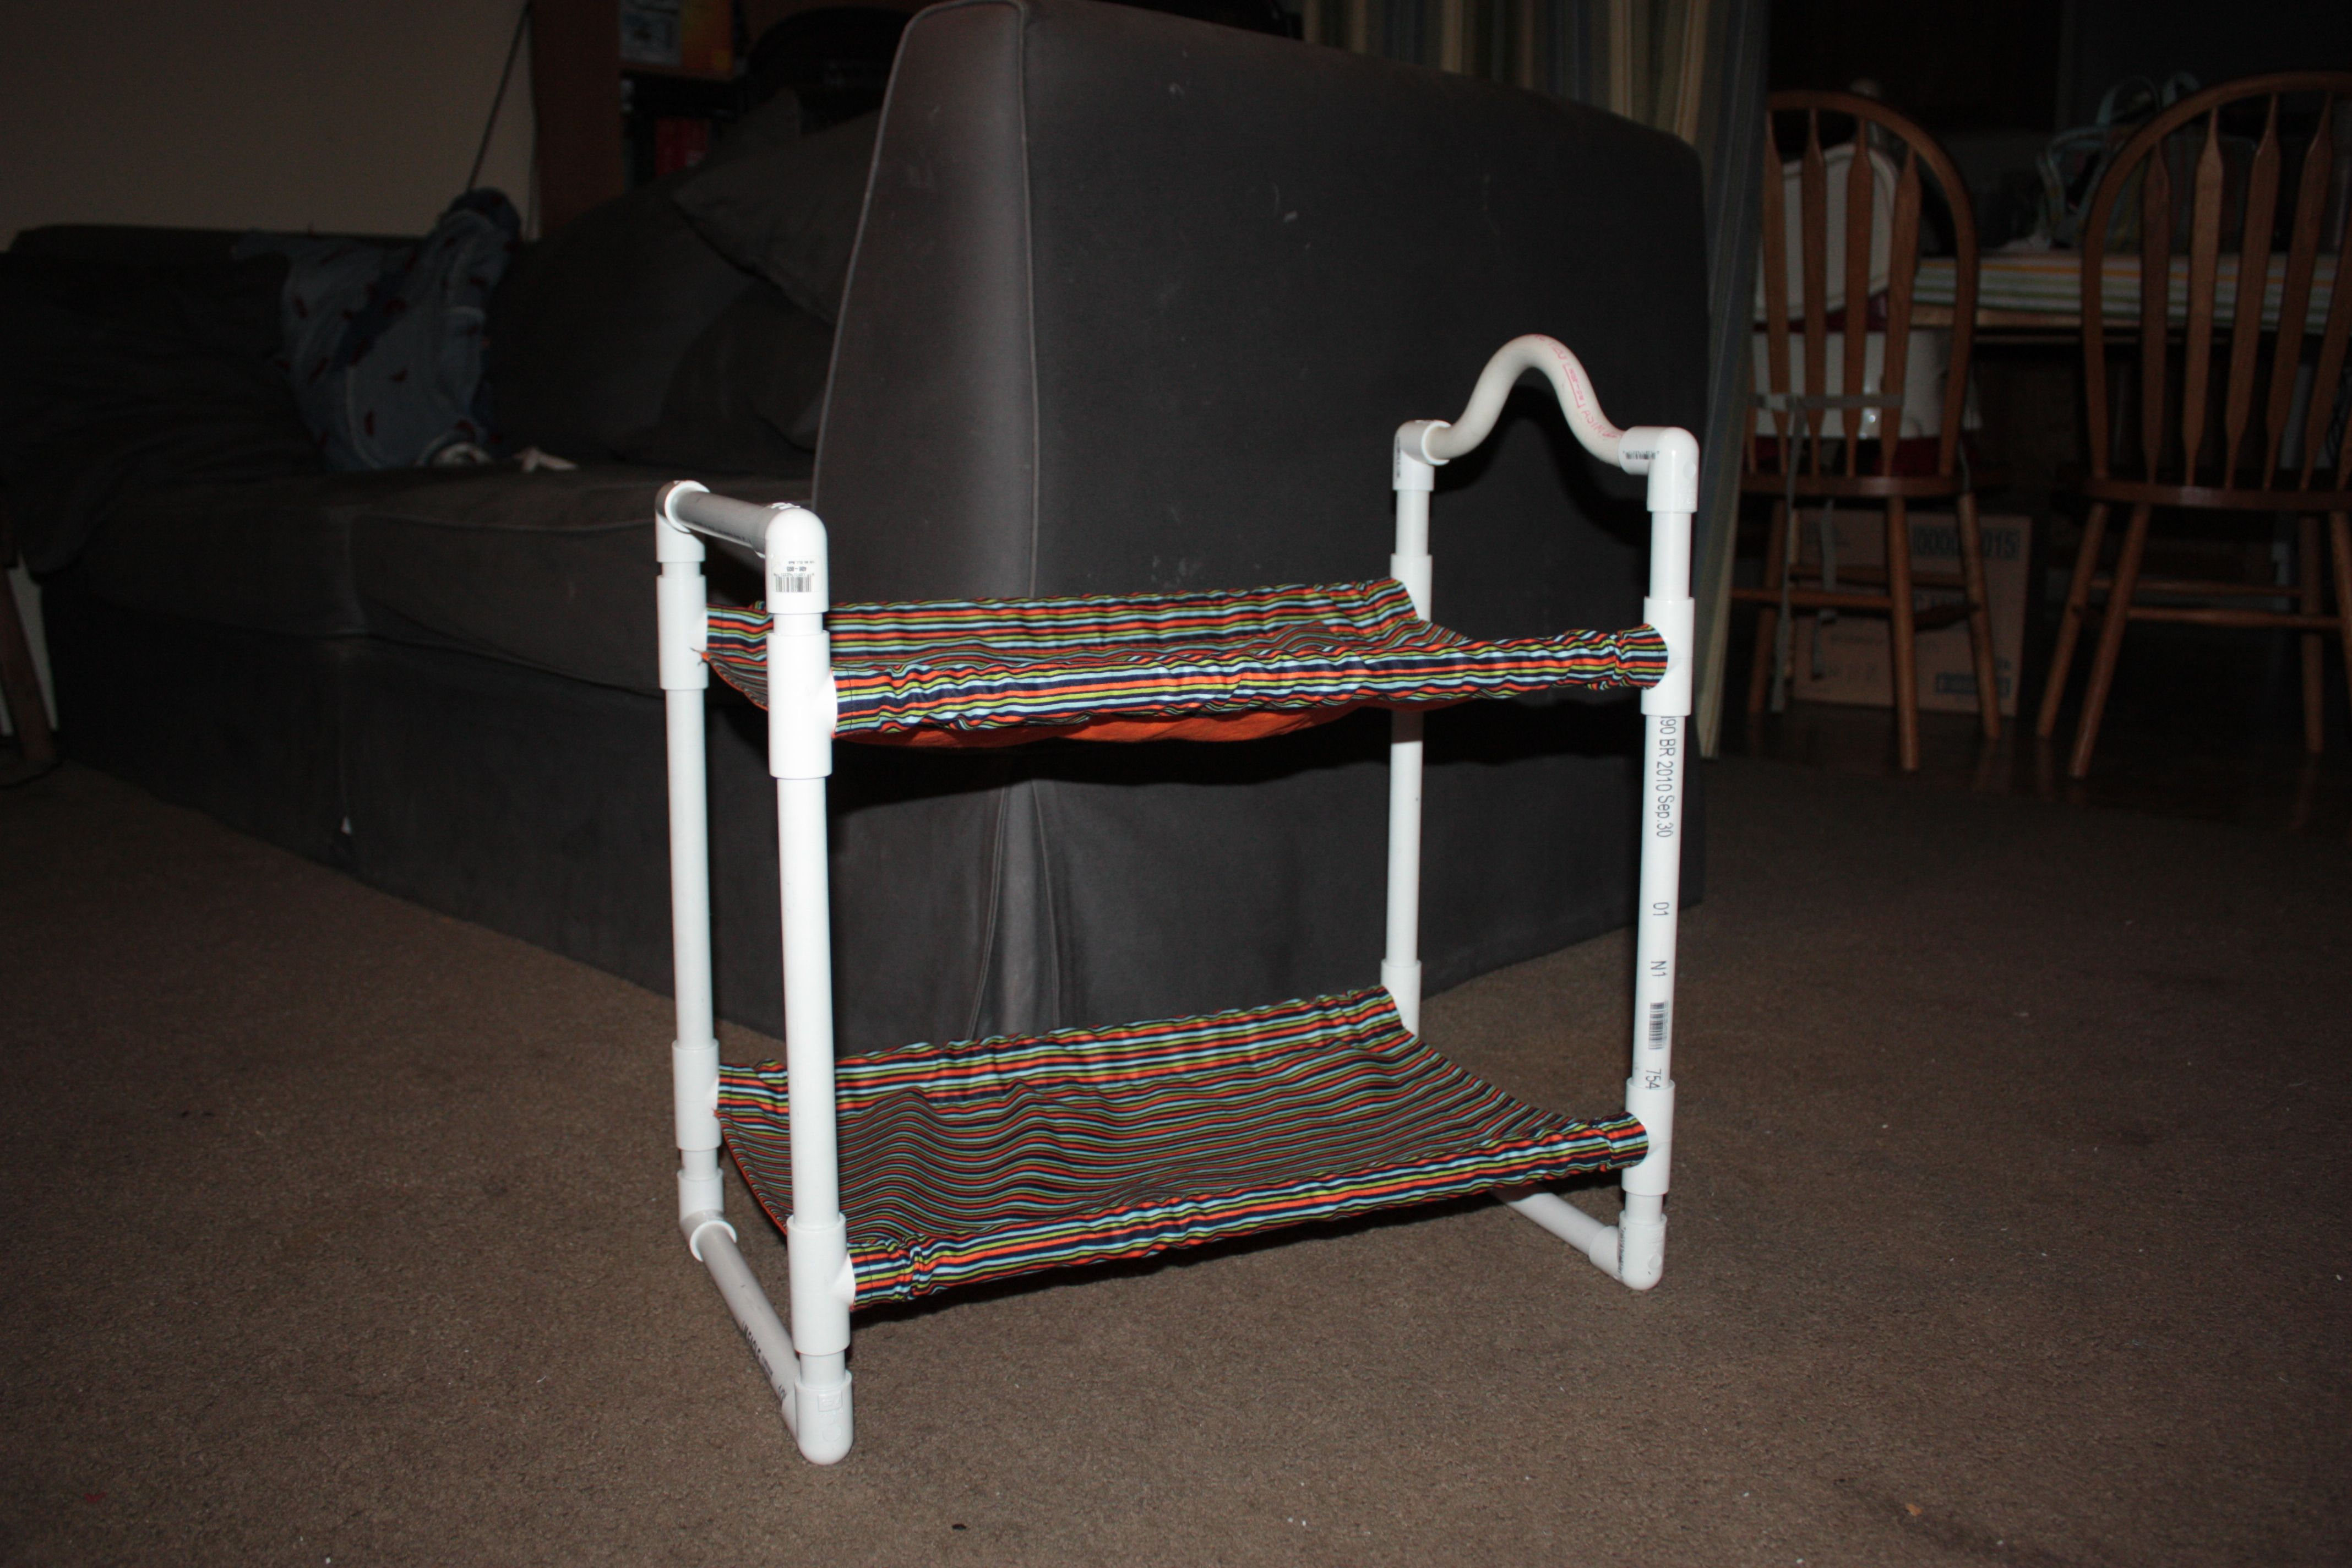 Pvc Bunk Bed American Girl Doll Bed Stuff I Ve Made American